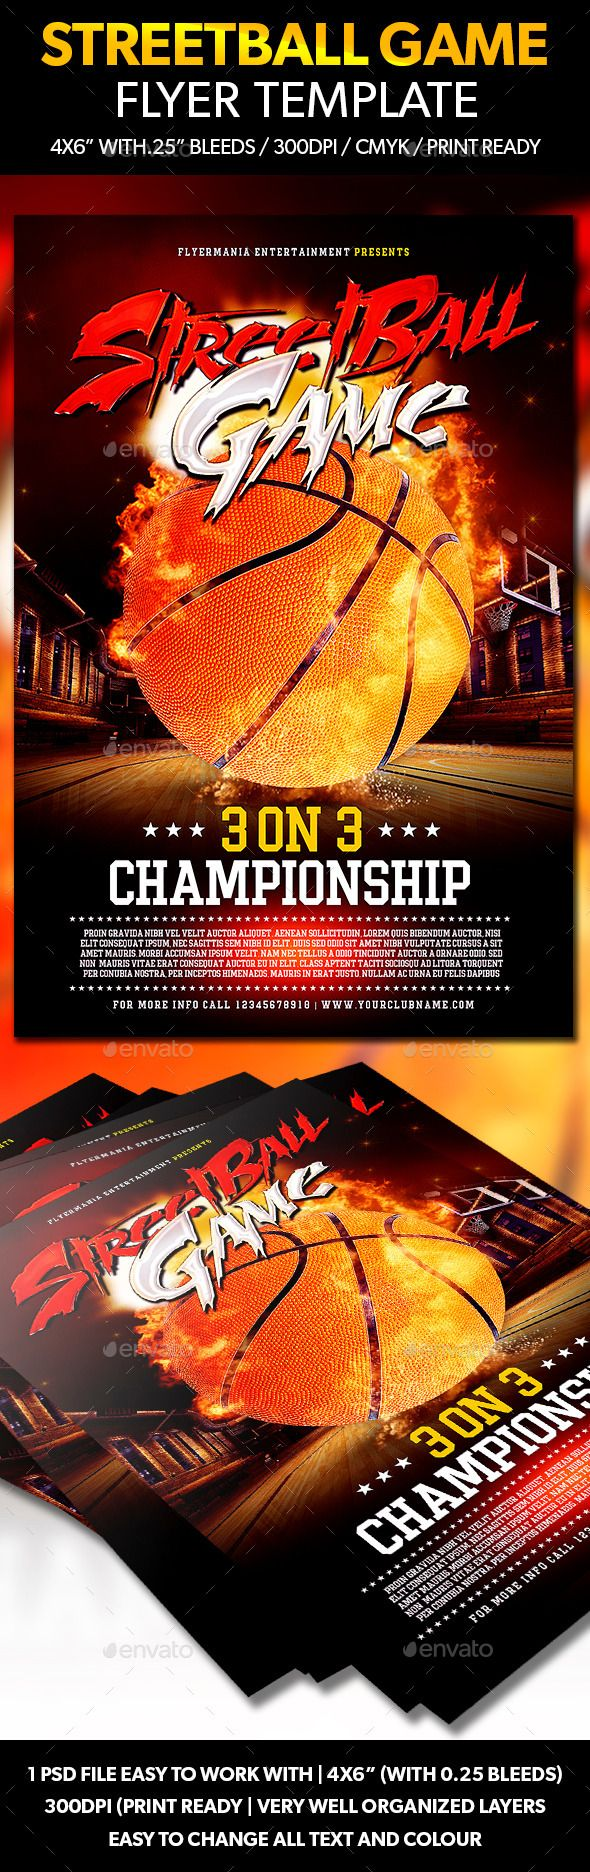 17 best images about basketball poster design on pinterest fonts advertising and flyer template. Black Bedroom Furniture Sets. Home Design Ideas